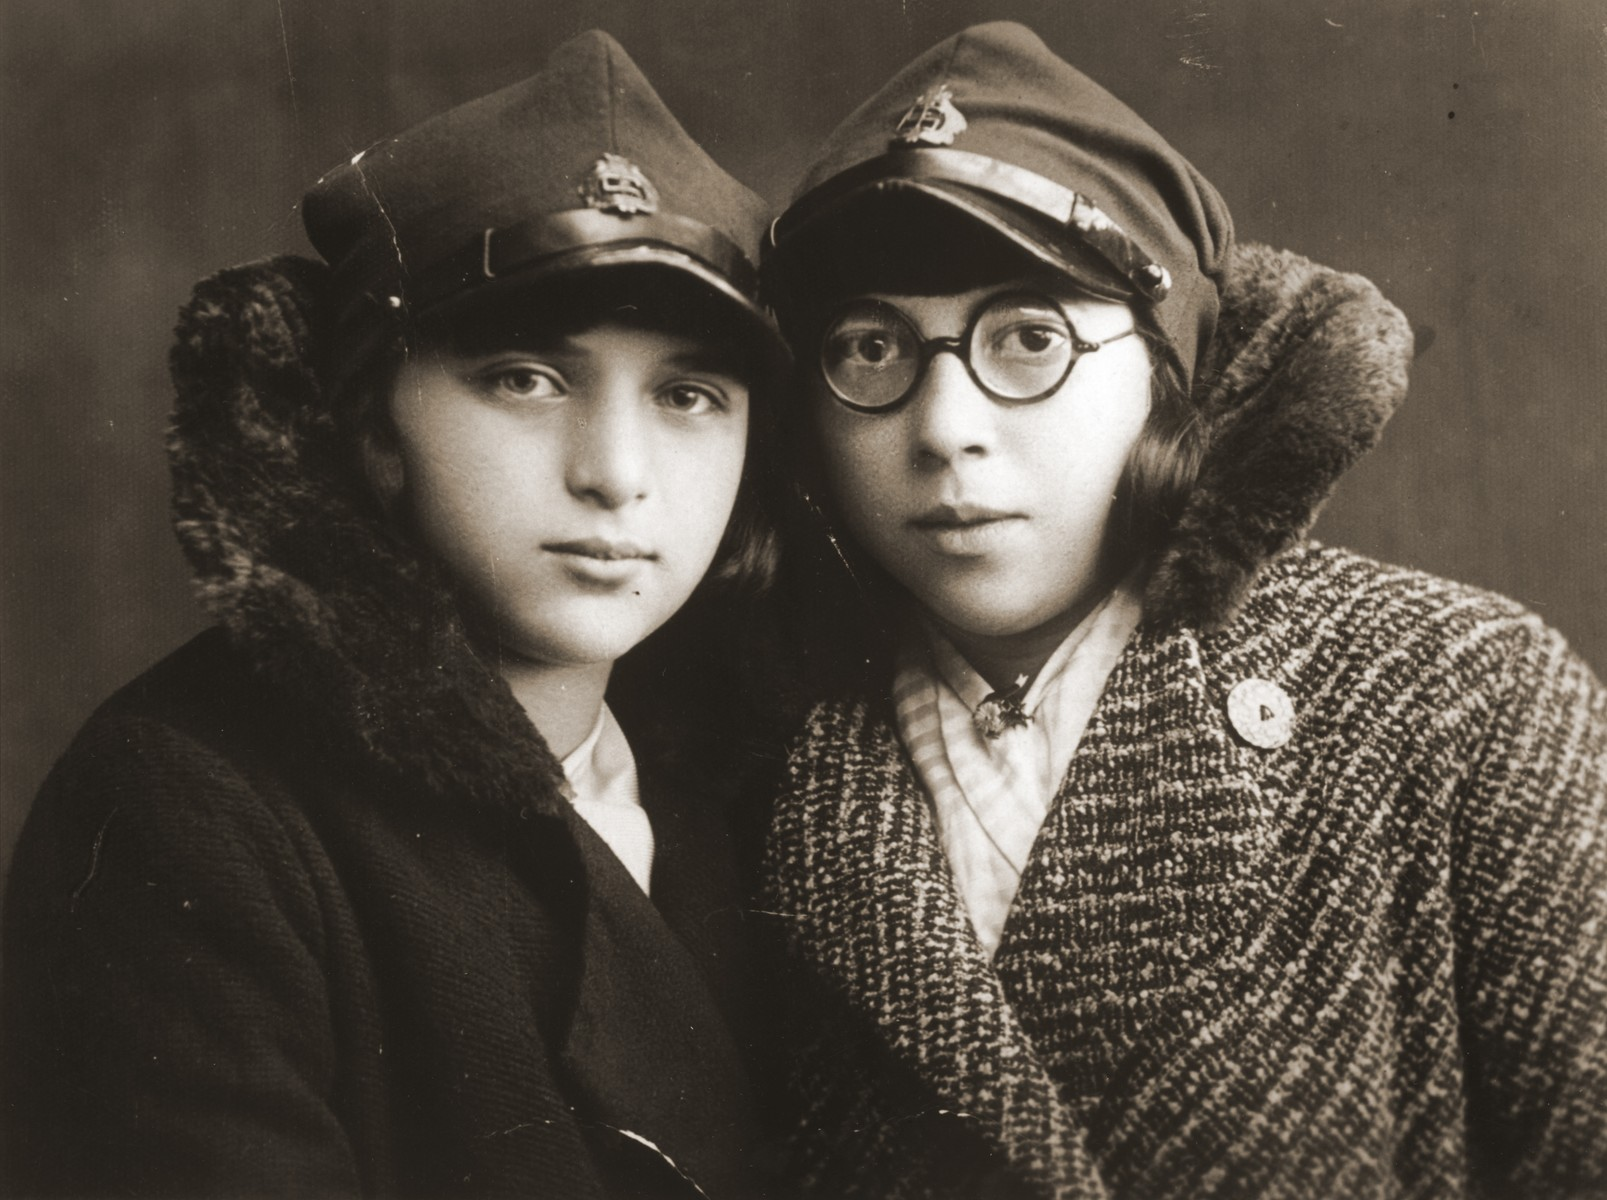 Felicja Berland poses with her friend Genia Laks wearing the hats of their school uniform.